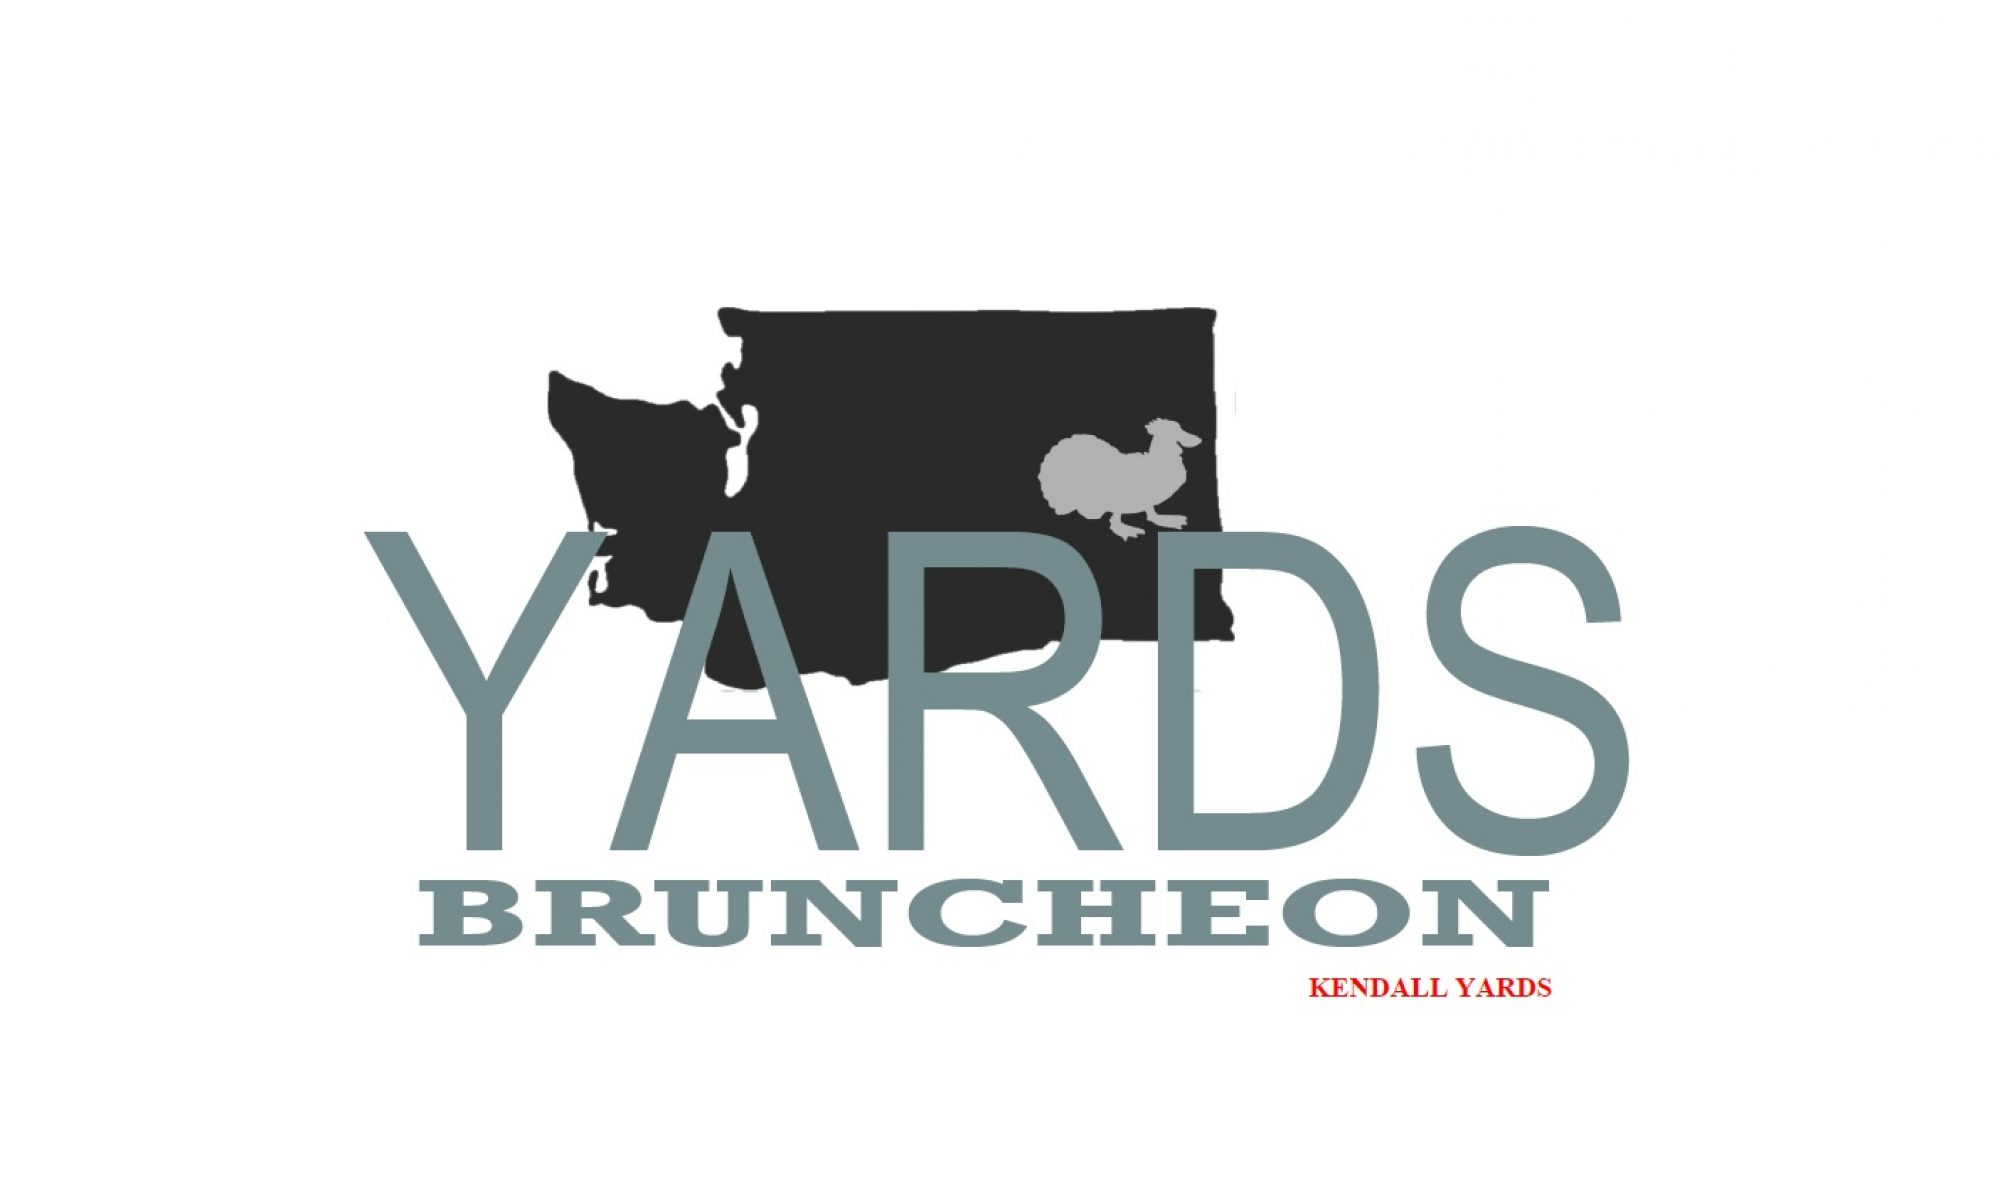 Yards Bruncheon